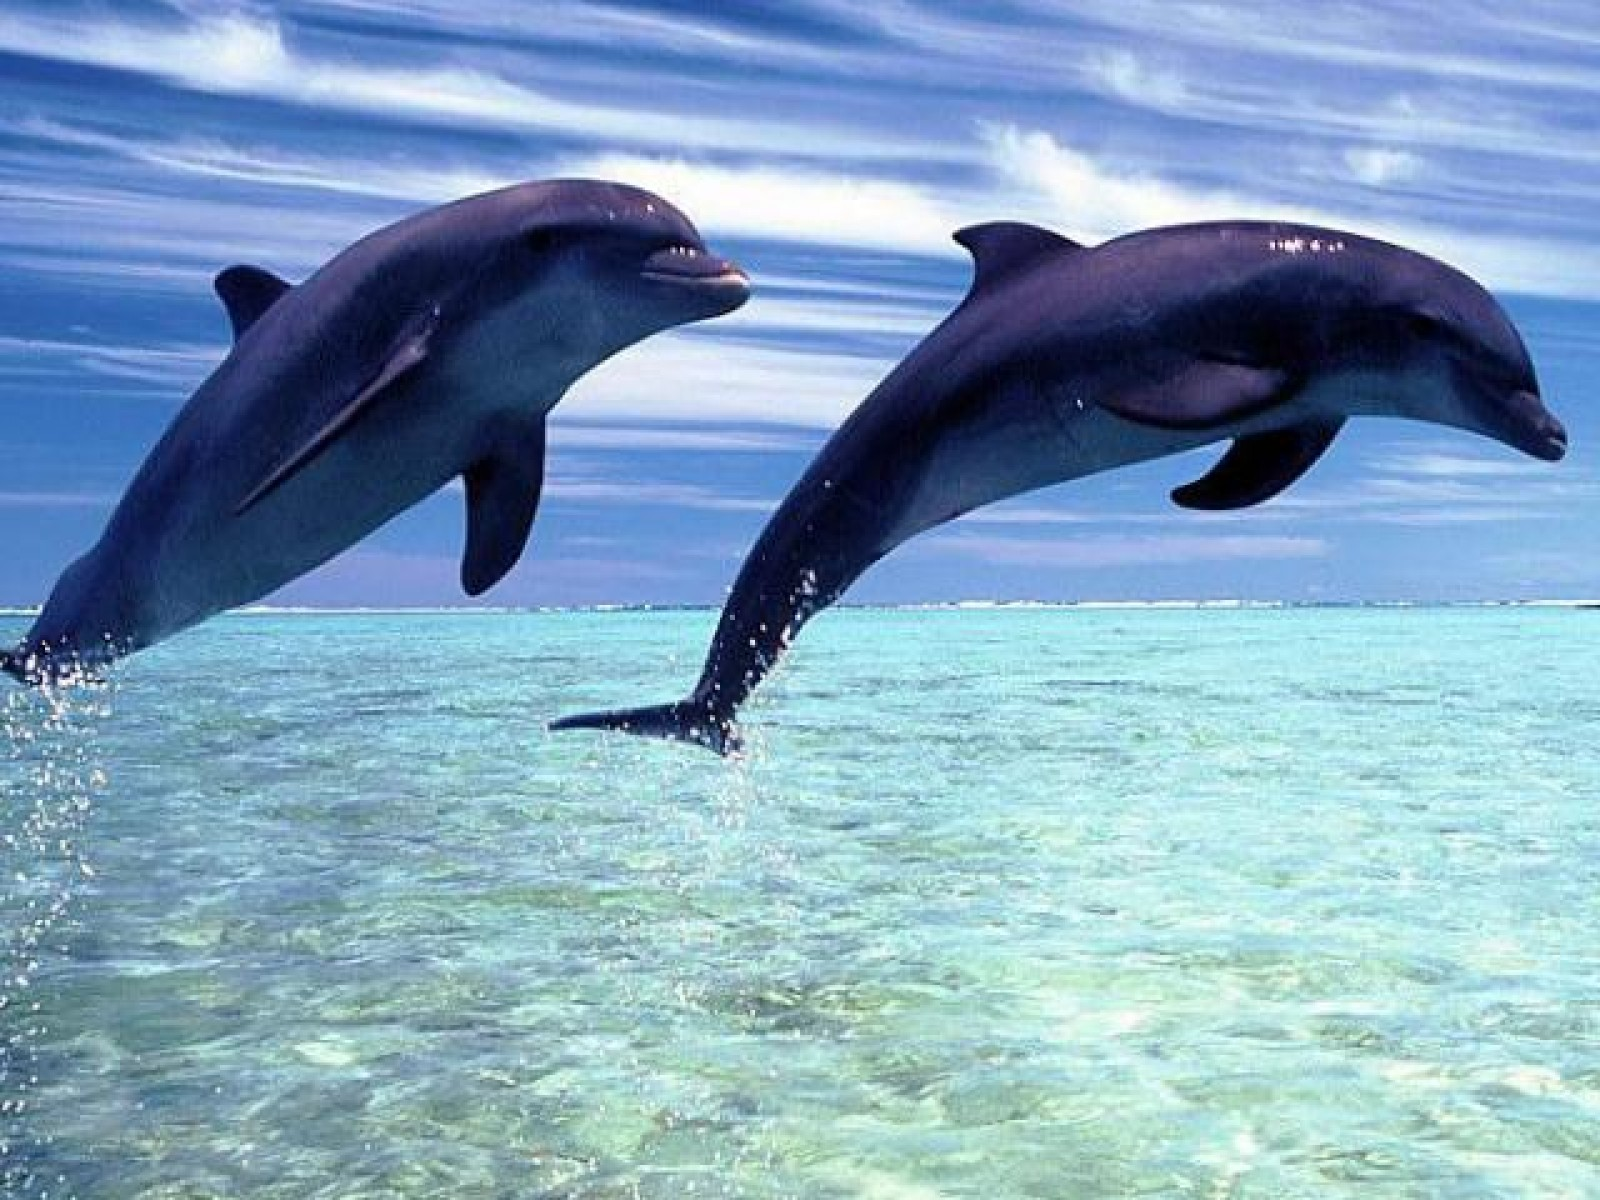 49+] Dolphin Browser Wallpaper on WallpaperSafari